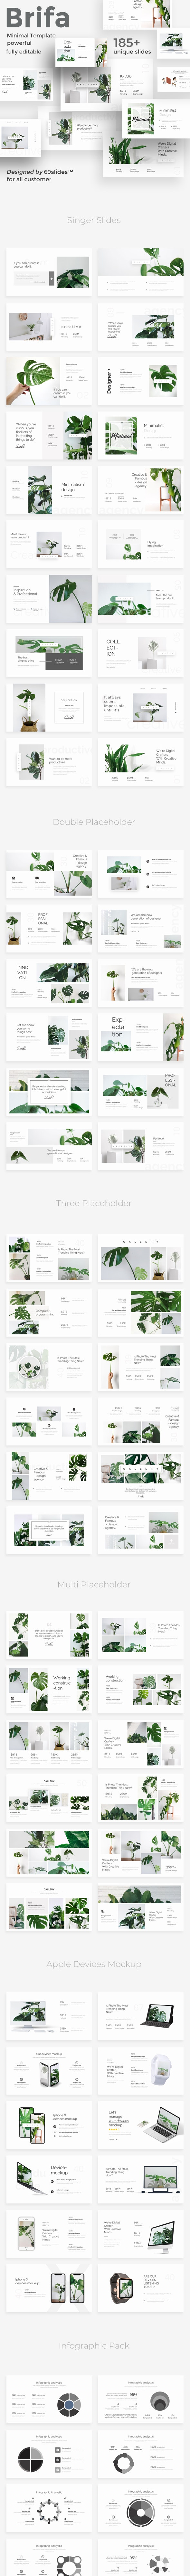 Brifa Minimal Powerpoint Template - Creative PowerPoint Templates